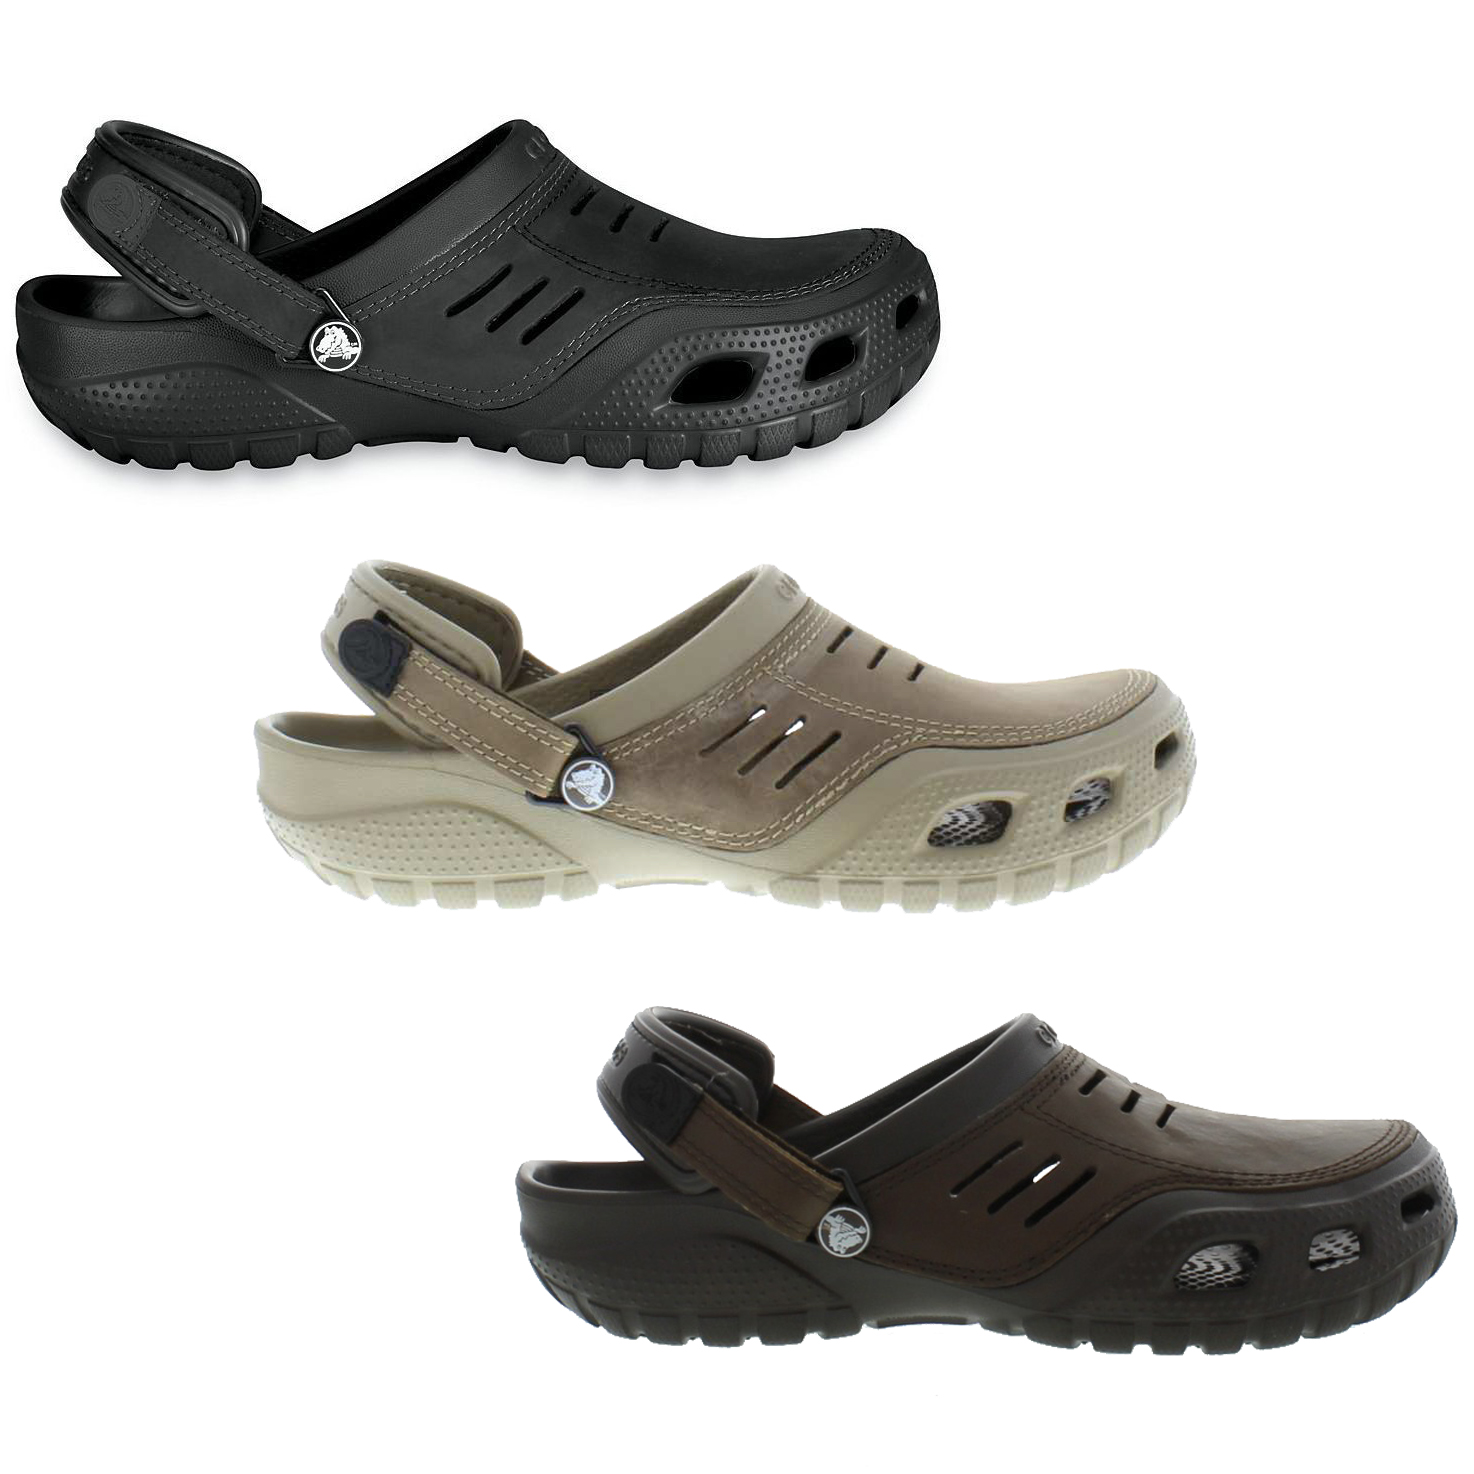 123813c6eeff9 They are great if you are looking for a slightly smarter Crocs style that  still has all the comfort and looks fantastic.